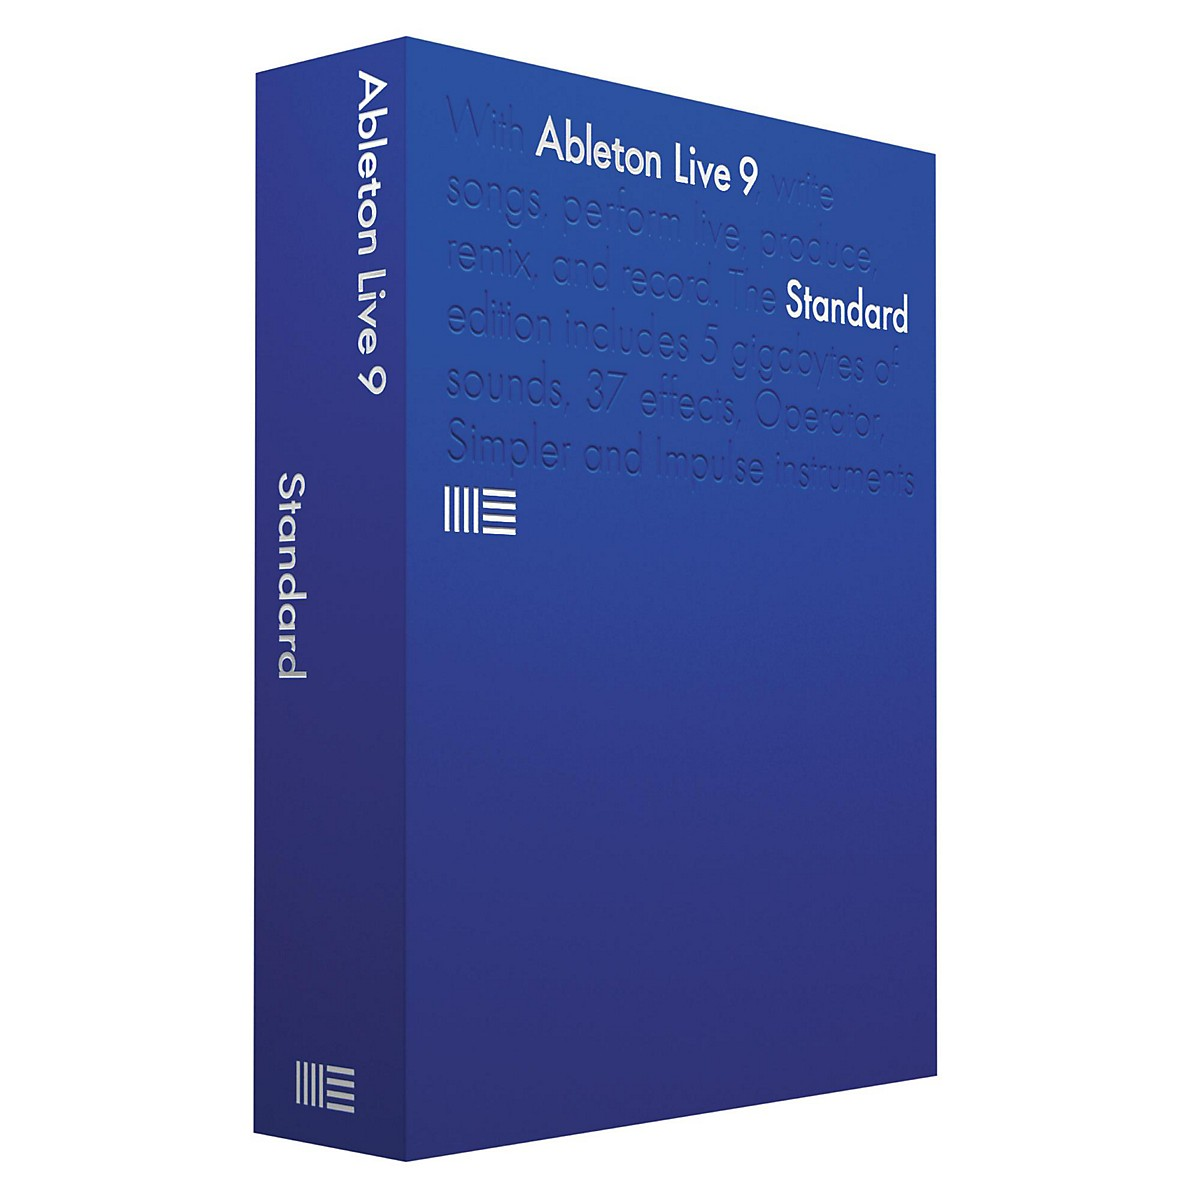 Ableton Live 9.7 Standard Software Download